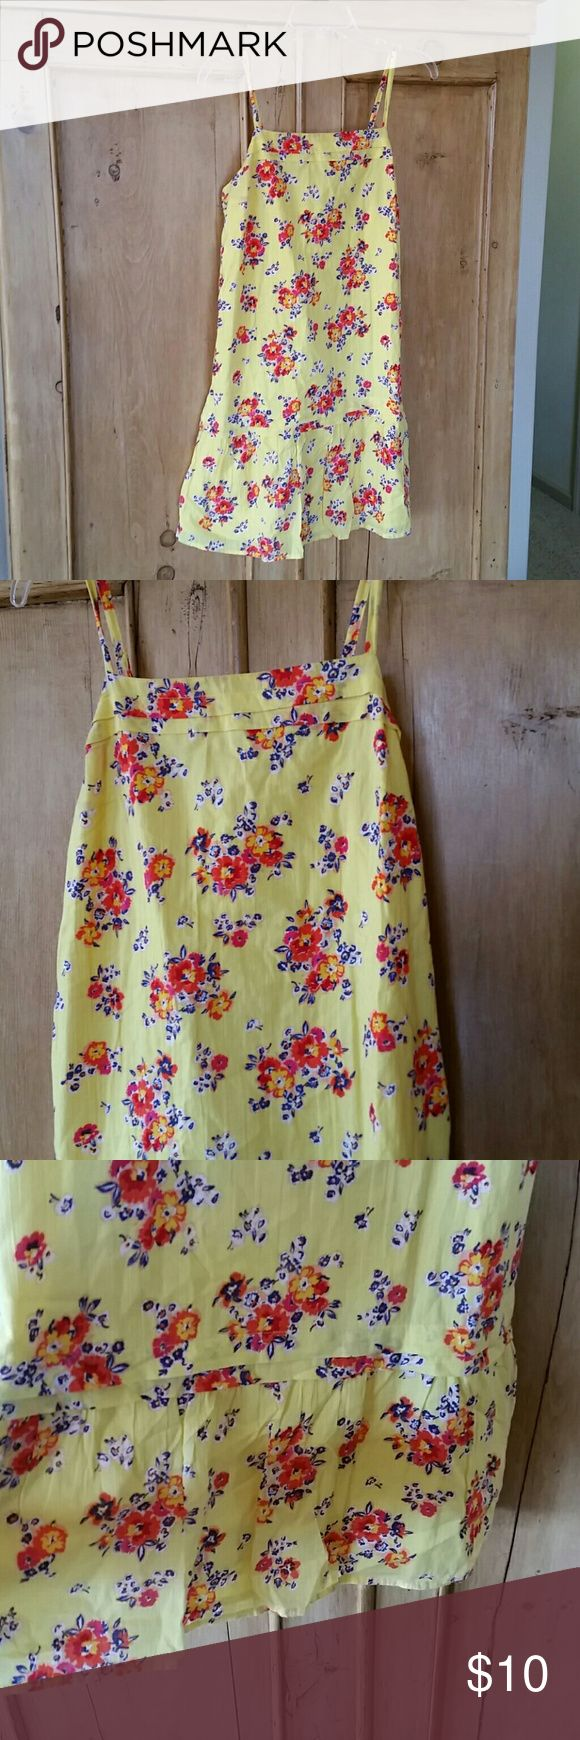 Adorable Old Navy sundress Gently worn, sundress. Light fabric makes it comfortable for those hot summery days. Adjustable straps to suit your length. Old Navy Dresses Mini